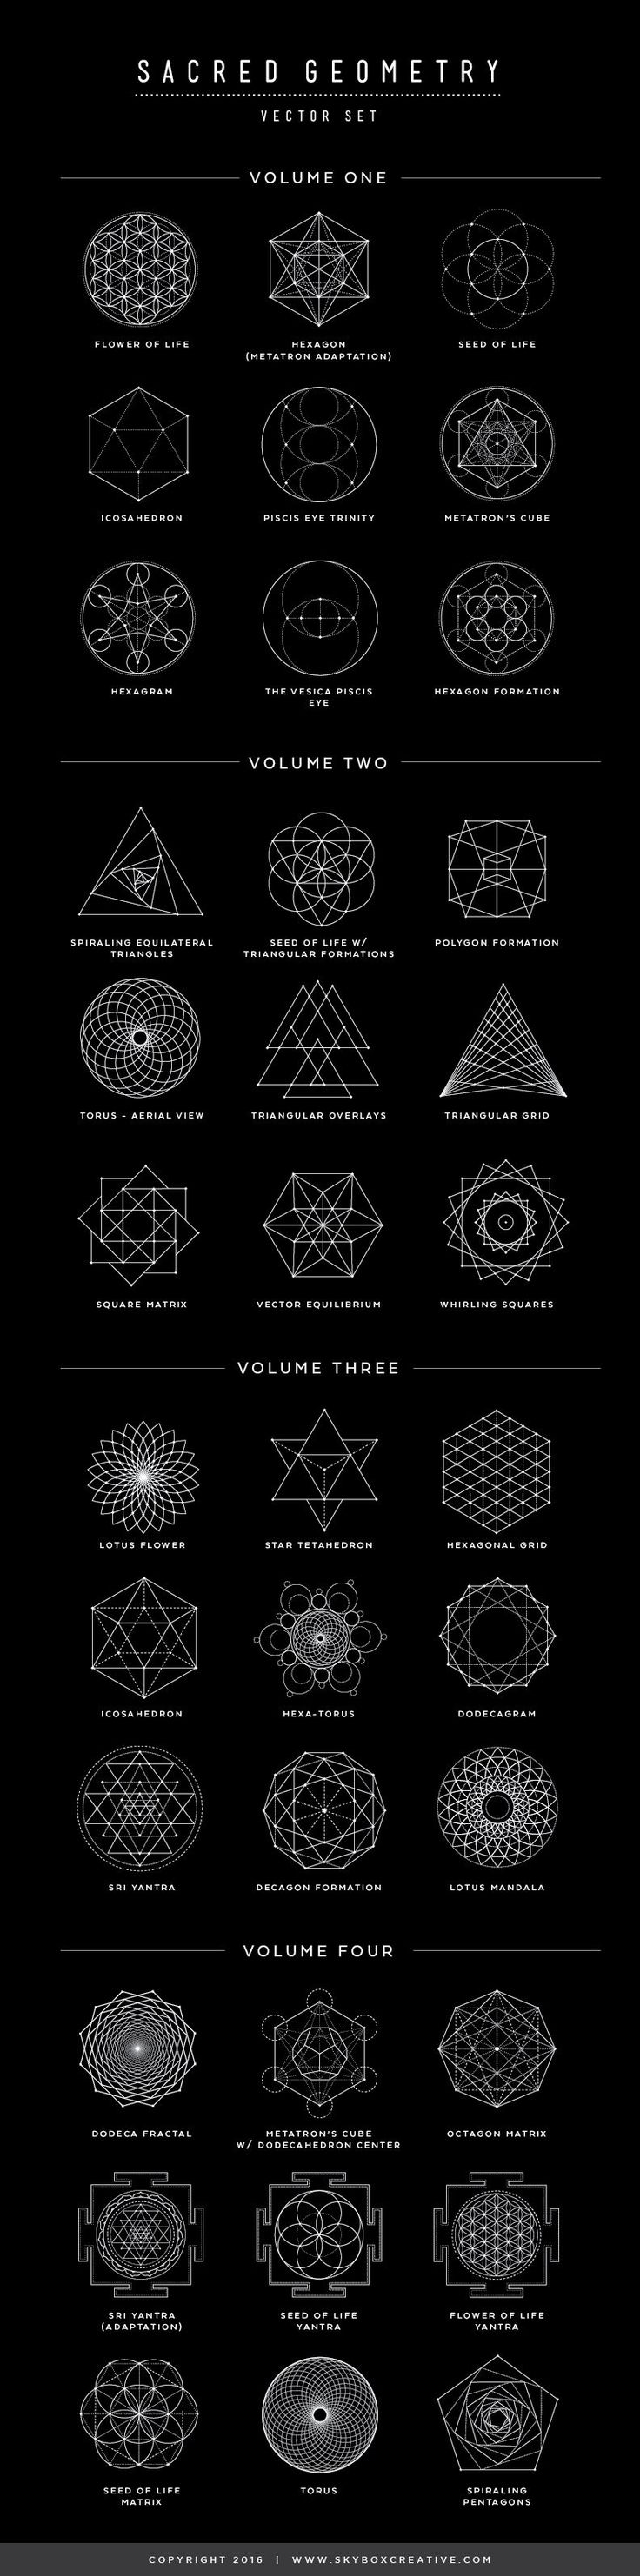 I created this PDF guide and short video to go over a few Sacred Geometry symbols, their names and meanings -- learn more and how to create your own Sacred Geometry artwork (click the image to watch). #SriYantra #FlowerofLife #SeedofLife #MetatronsCube #PiscisEye #Torus #SacredGeometry #StarTetahedron #Icosahedron #SacredGeometry101 #Vector #Illustration --- Illustrations by Skybox Creative, check out the bundle HERE…